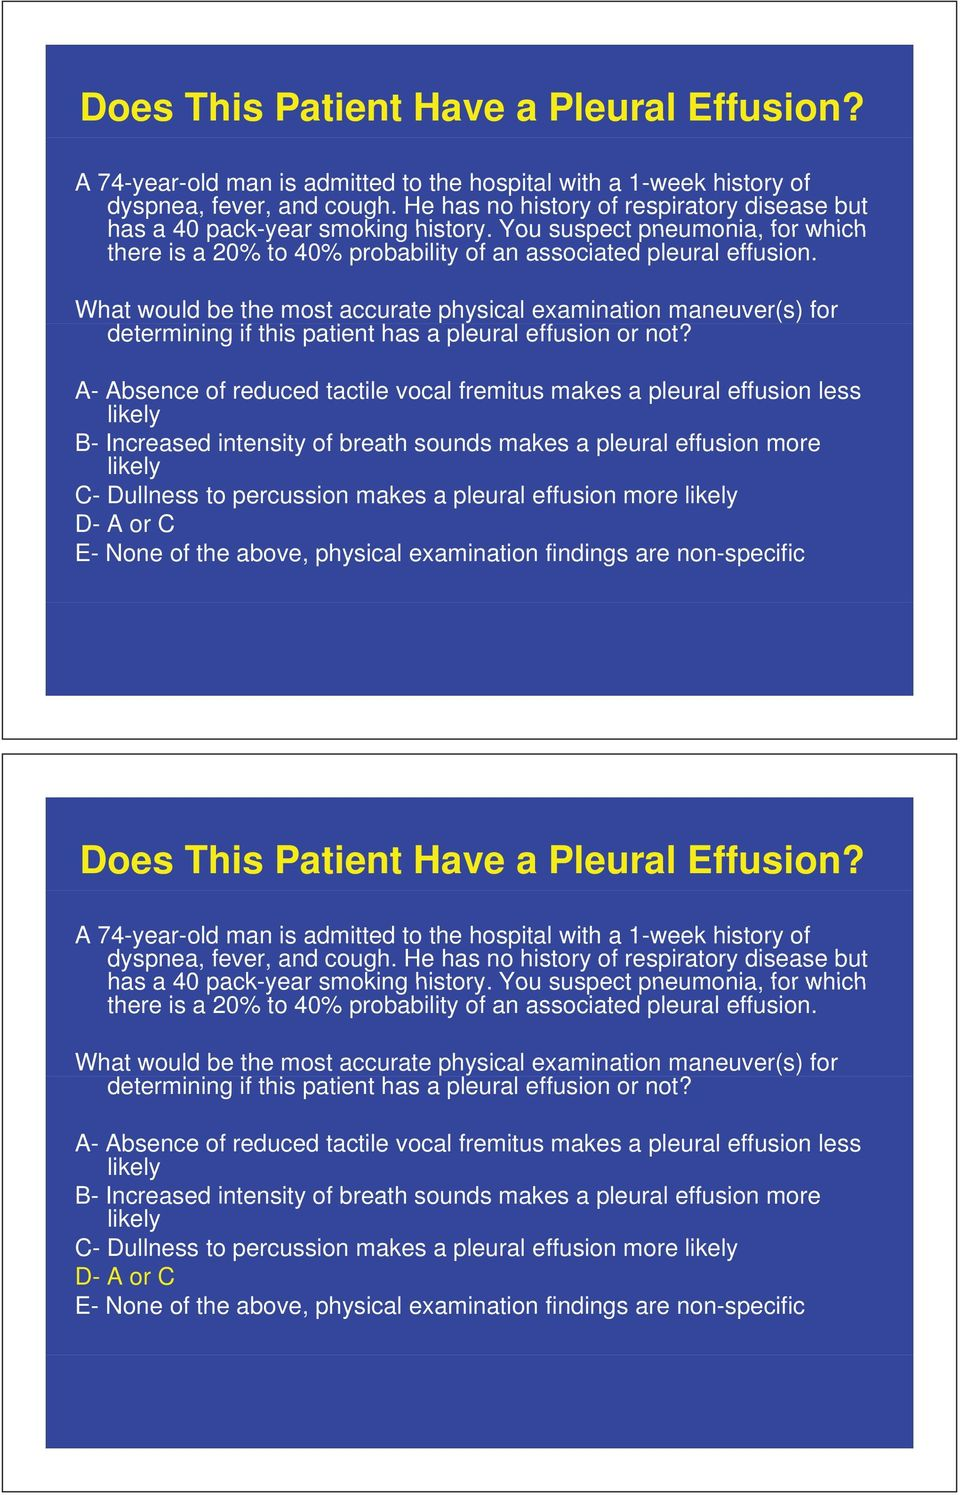 What would be the most accurate physical examination maneuver(s) for determining if this patient has a pleural effusion or not?